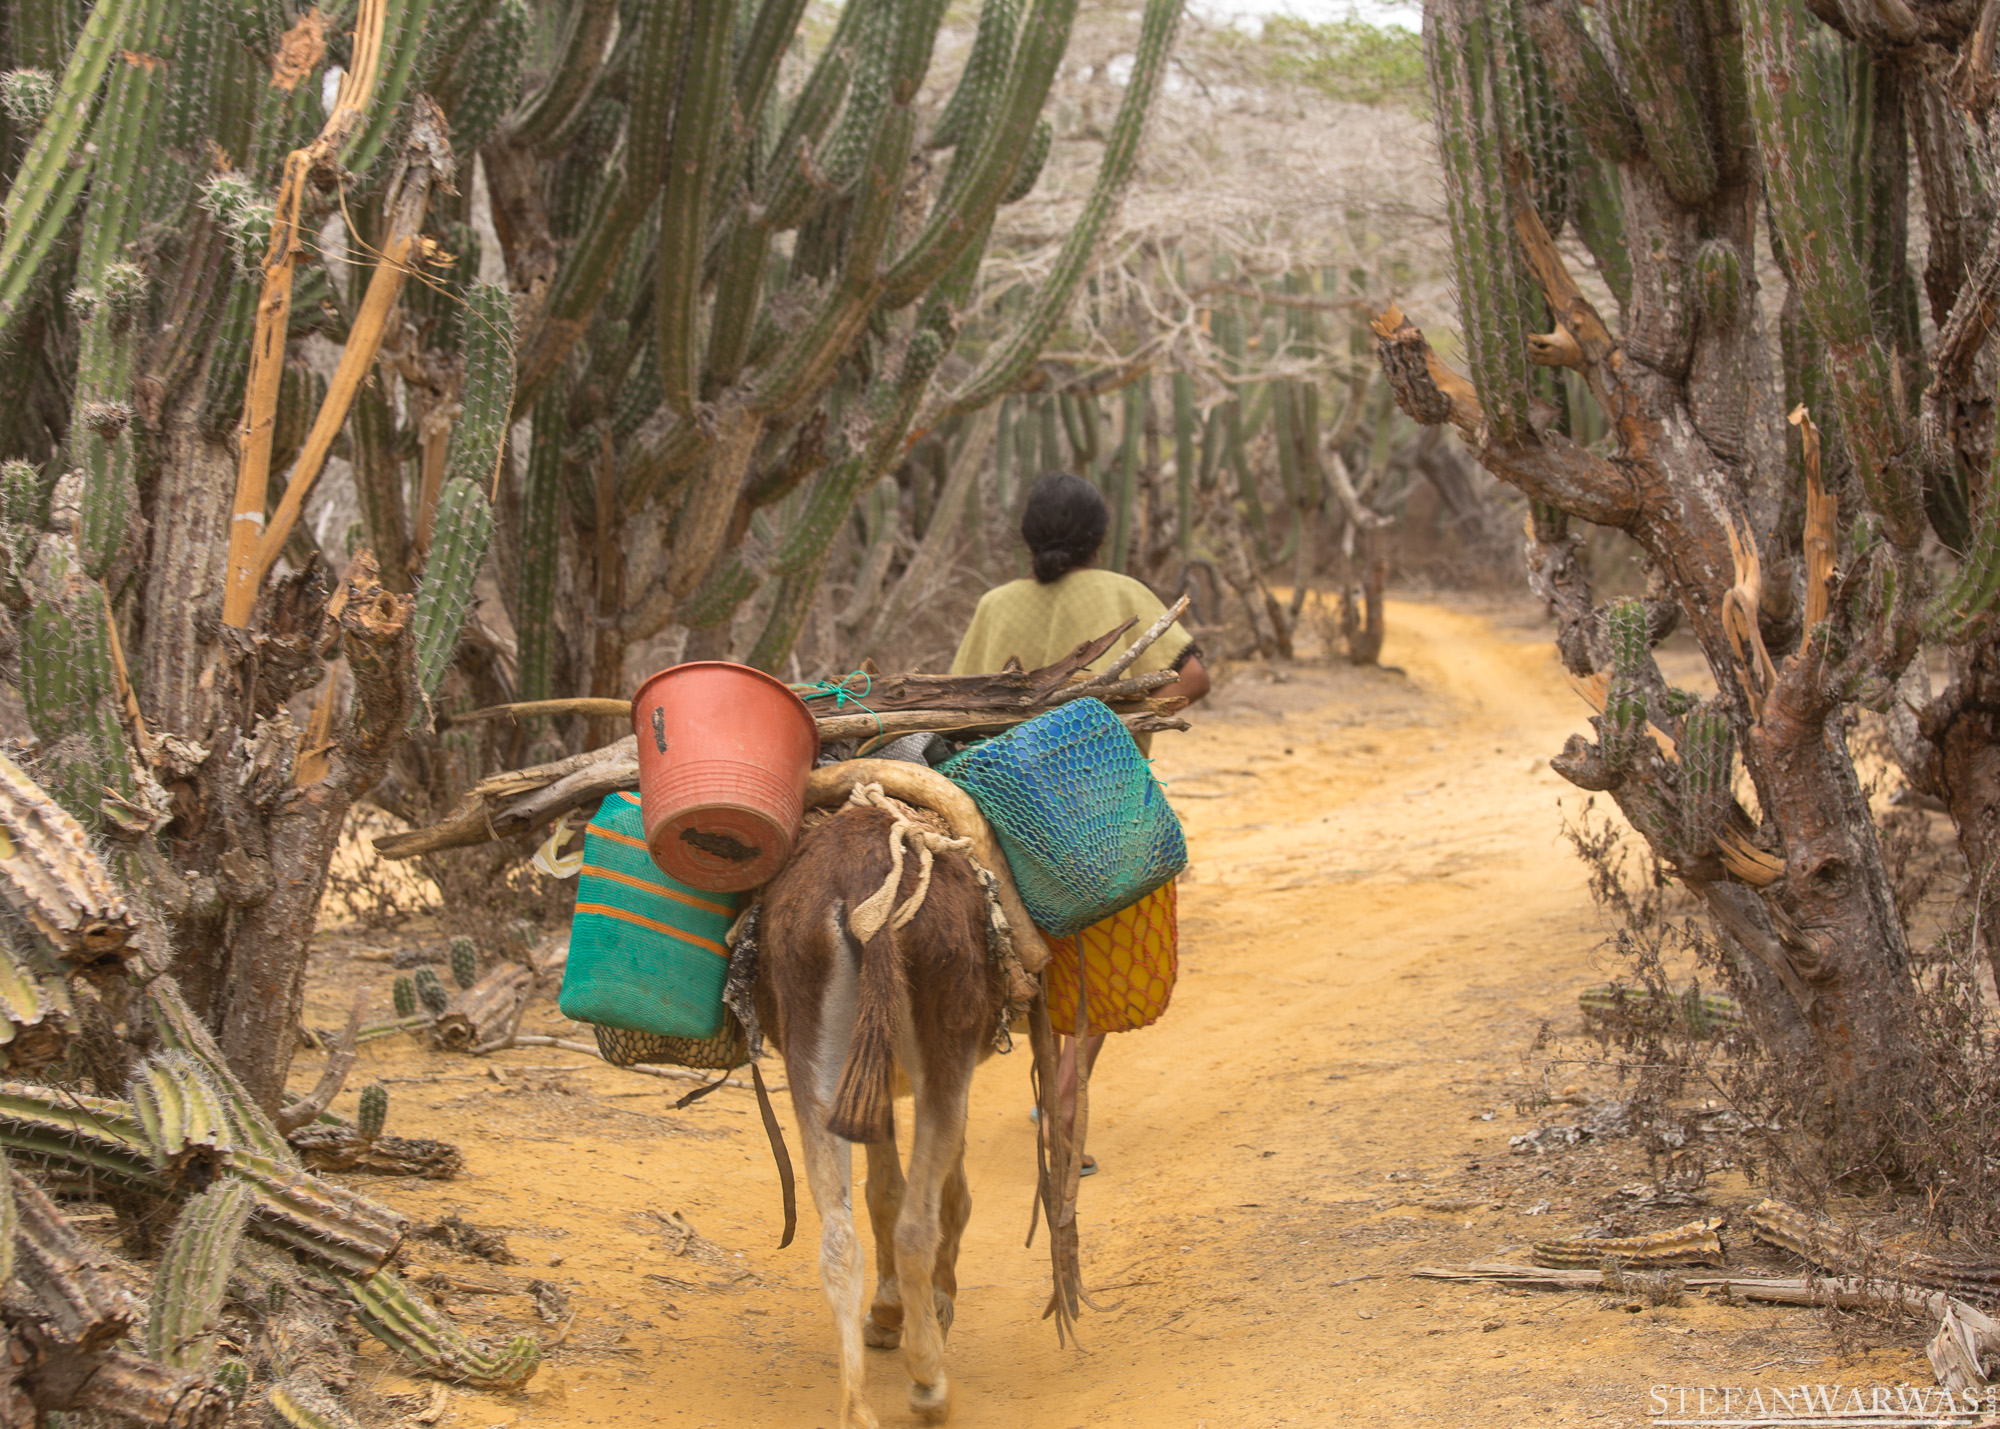 Wayuu transporting water by donkey.